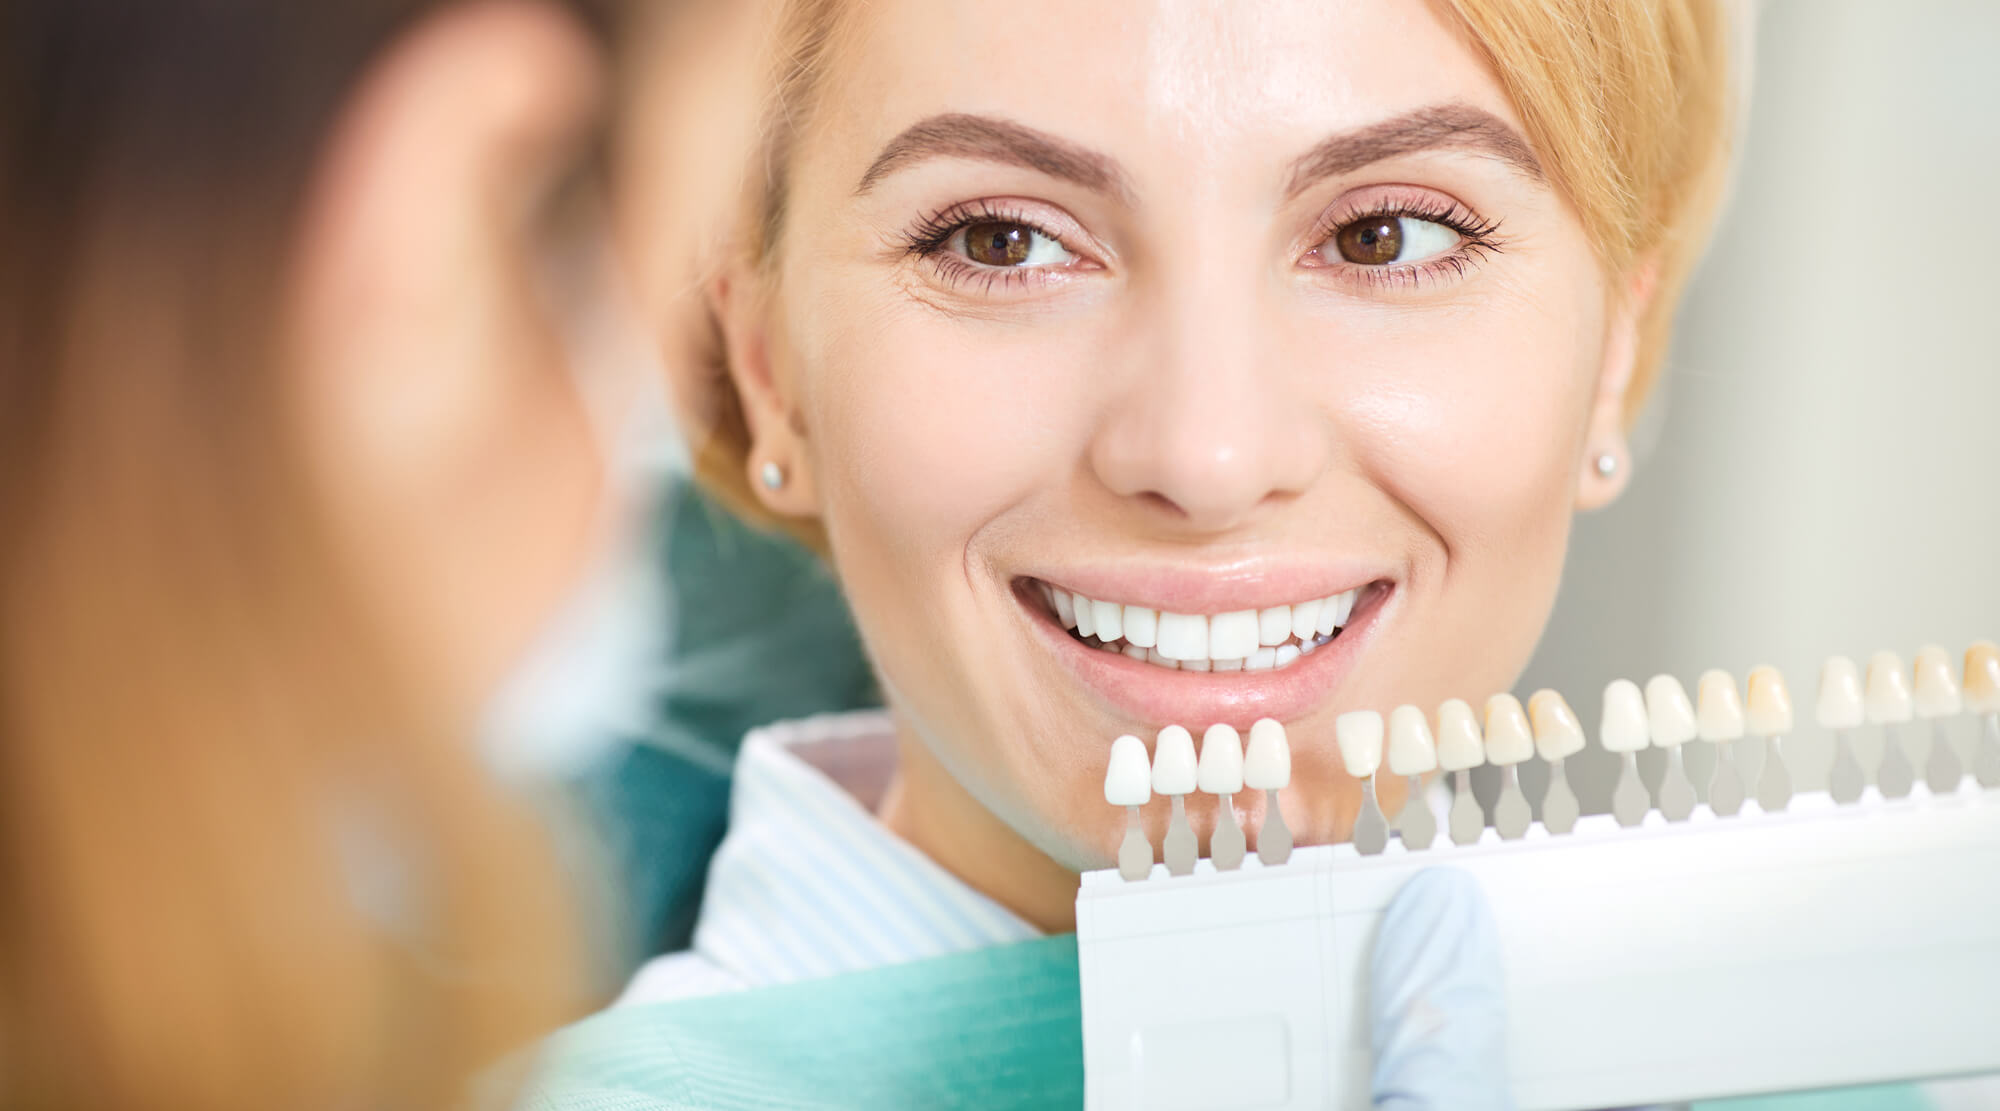 Where can I get Dental implants coral springs?